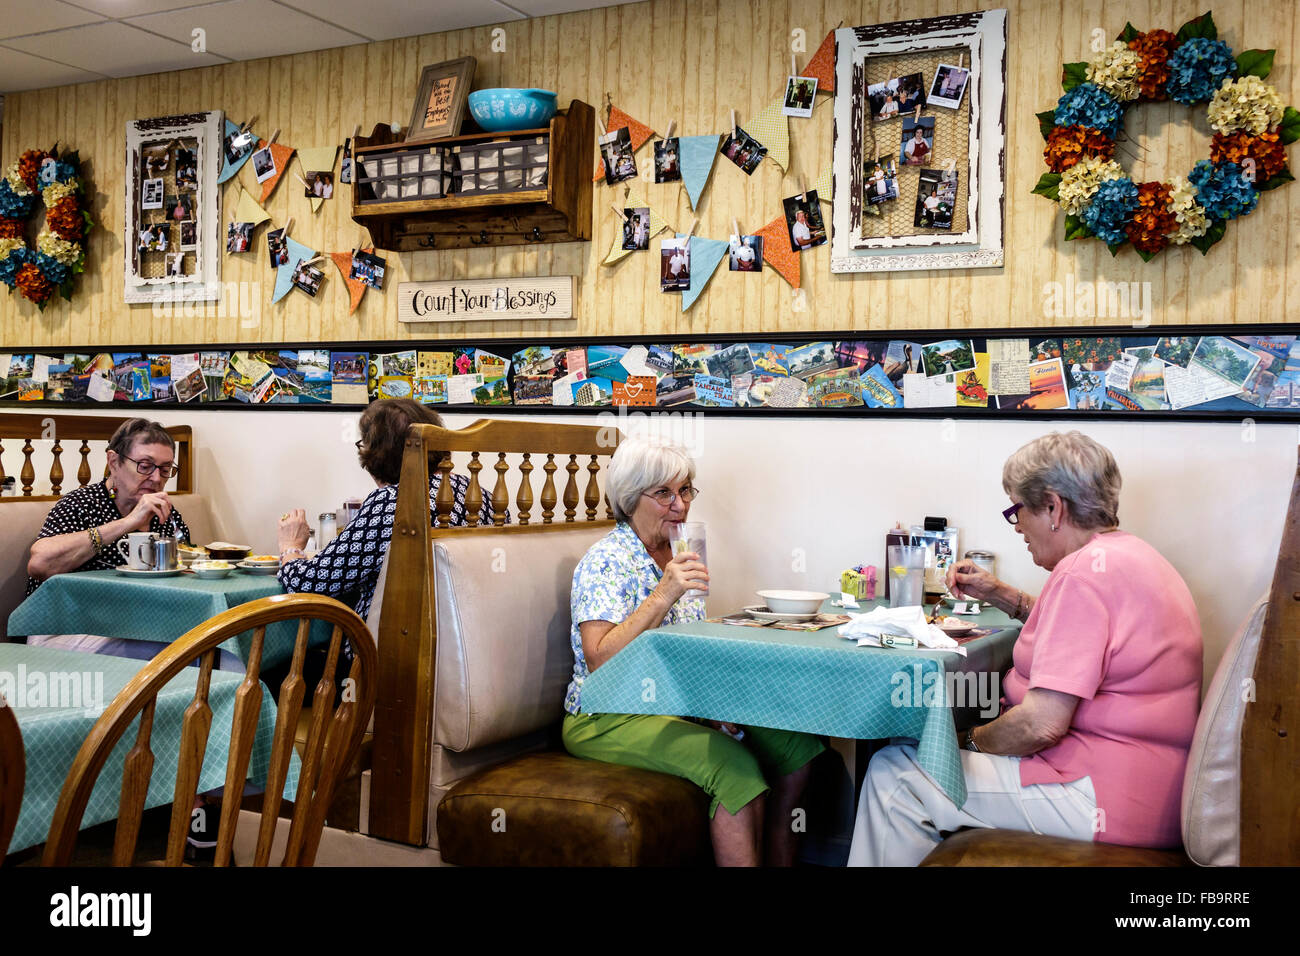 Incroyable Sarasota Florida Pinecraft Amish Community Yoderu0027s Amish Village Restaurant  Restaurant Inside Booths Tables Senior Woman Friends